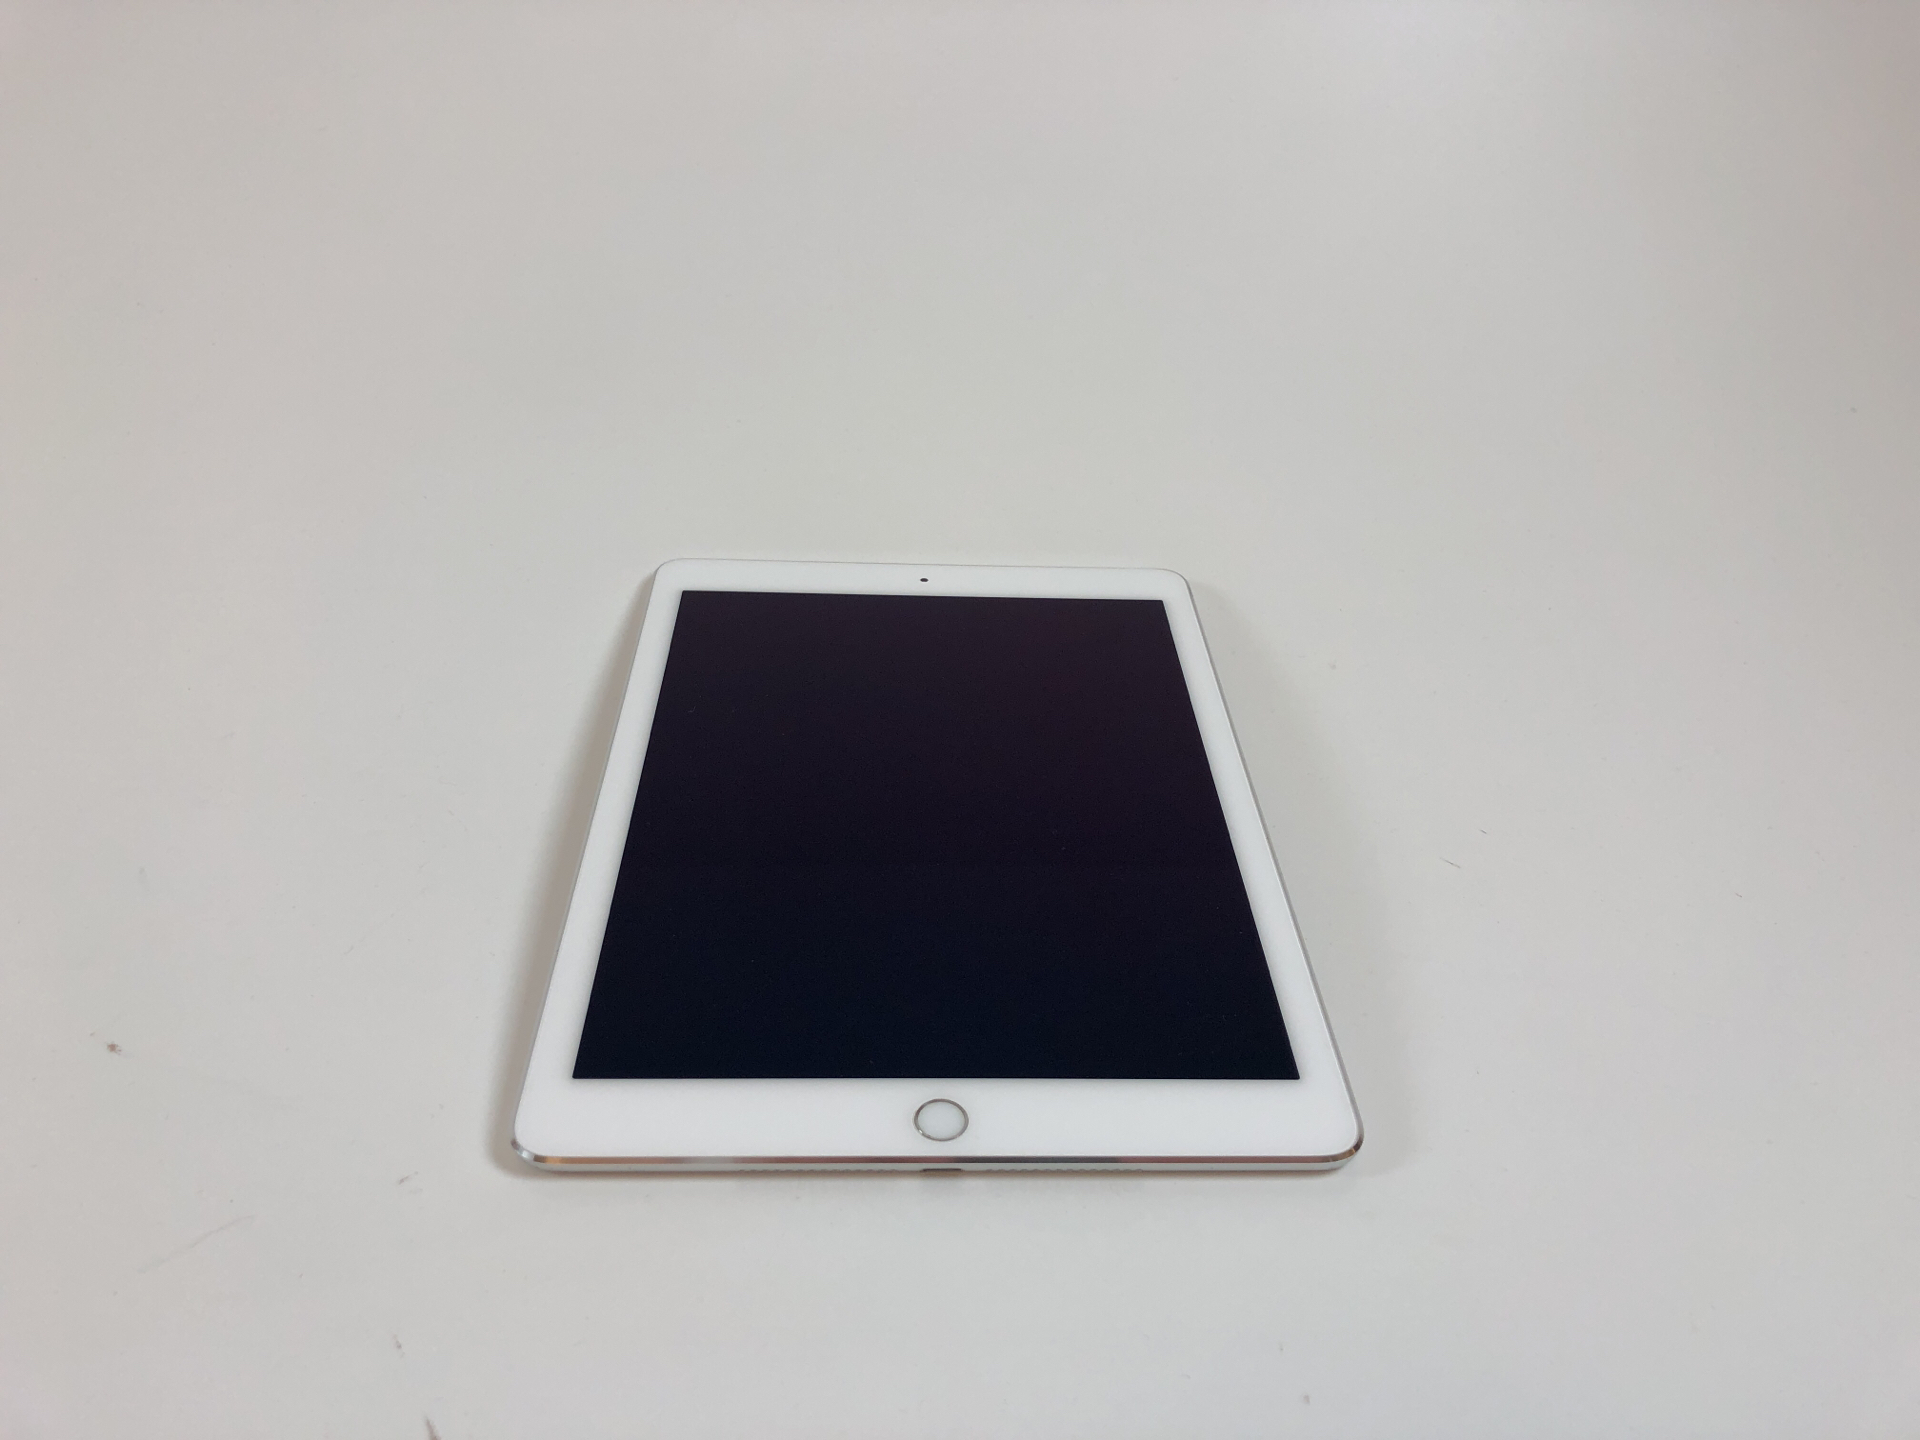 iPad Air 2 Wi-Fi 16GB, 16GB, Silver, image 1